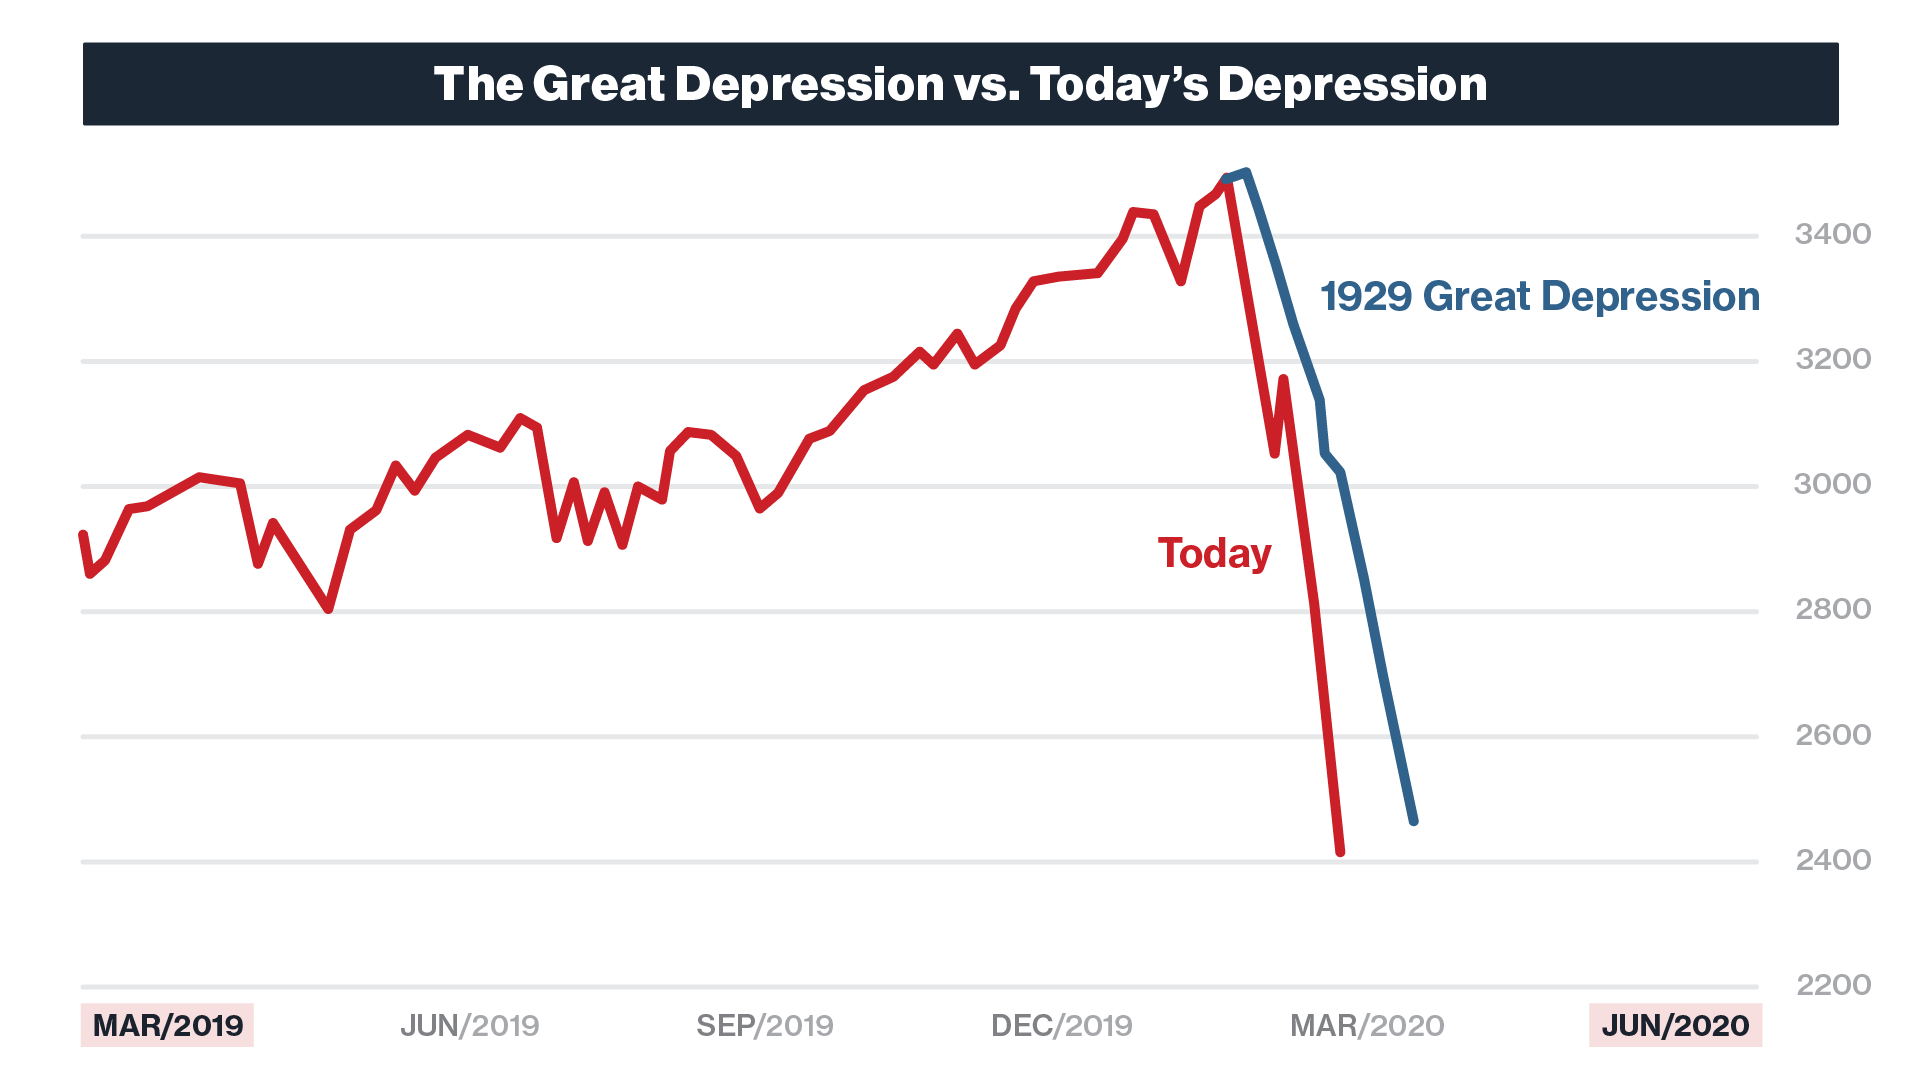 The Great Depression of 2020